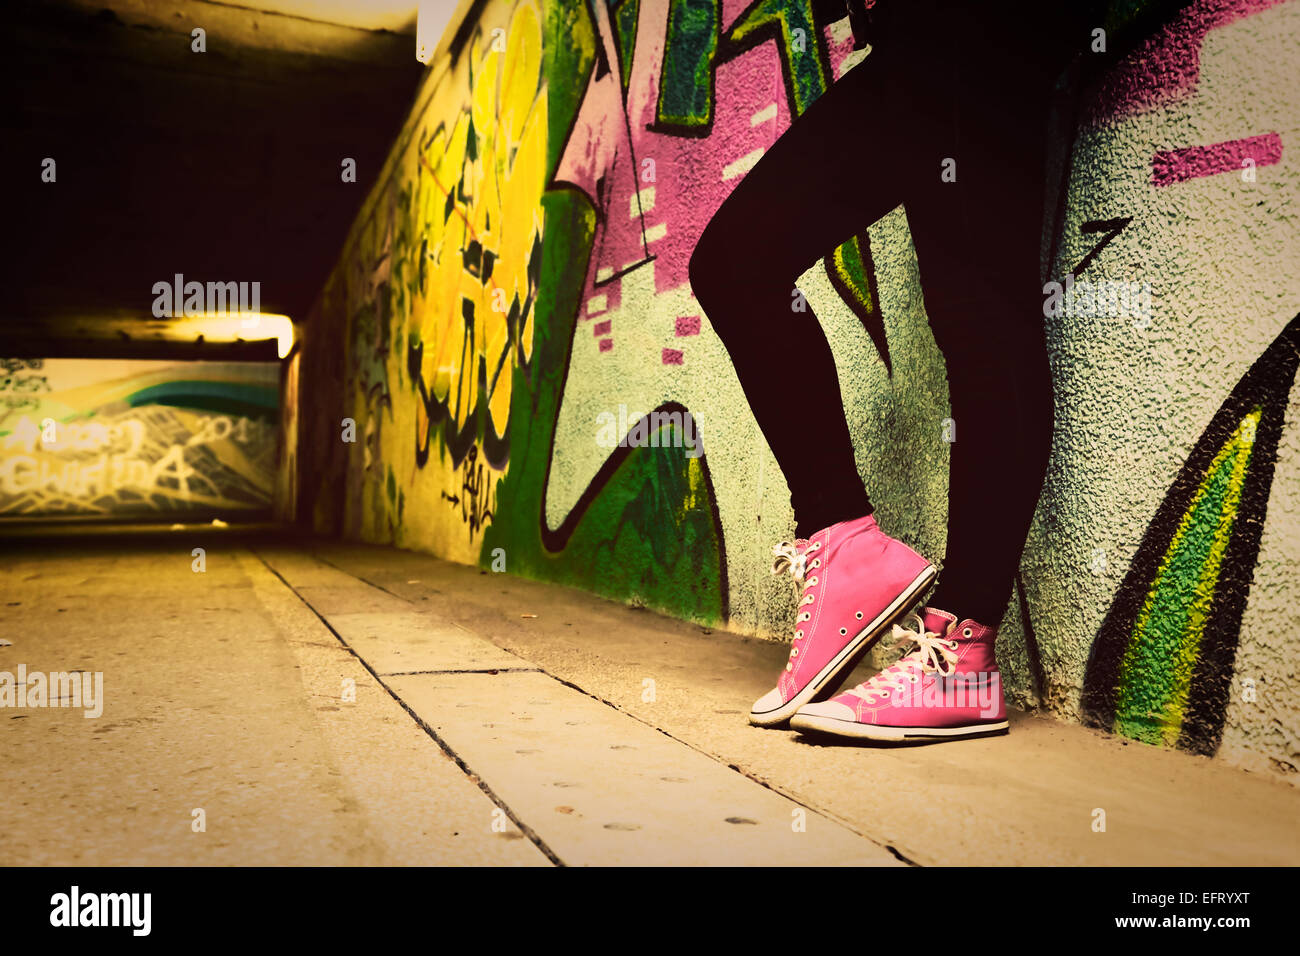 Close up of pink sneakers worn by a teenager. Grunge graffiti wall ...